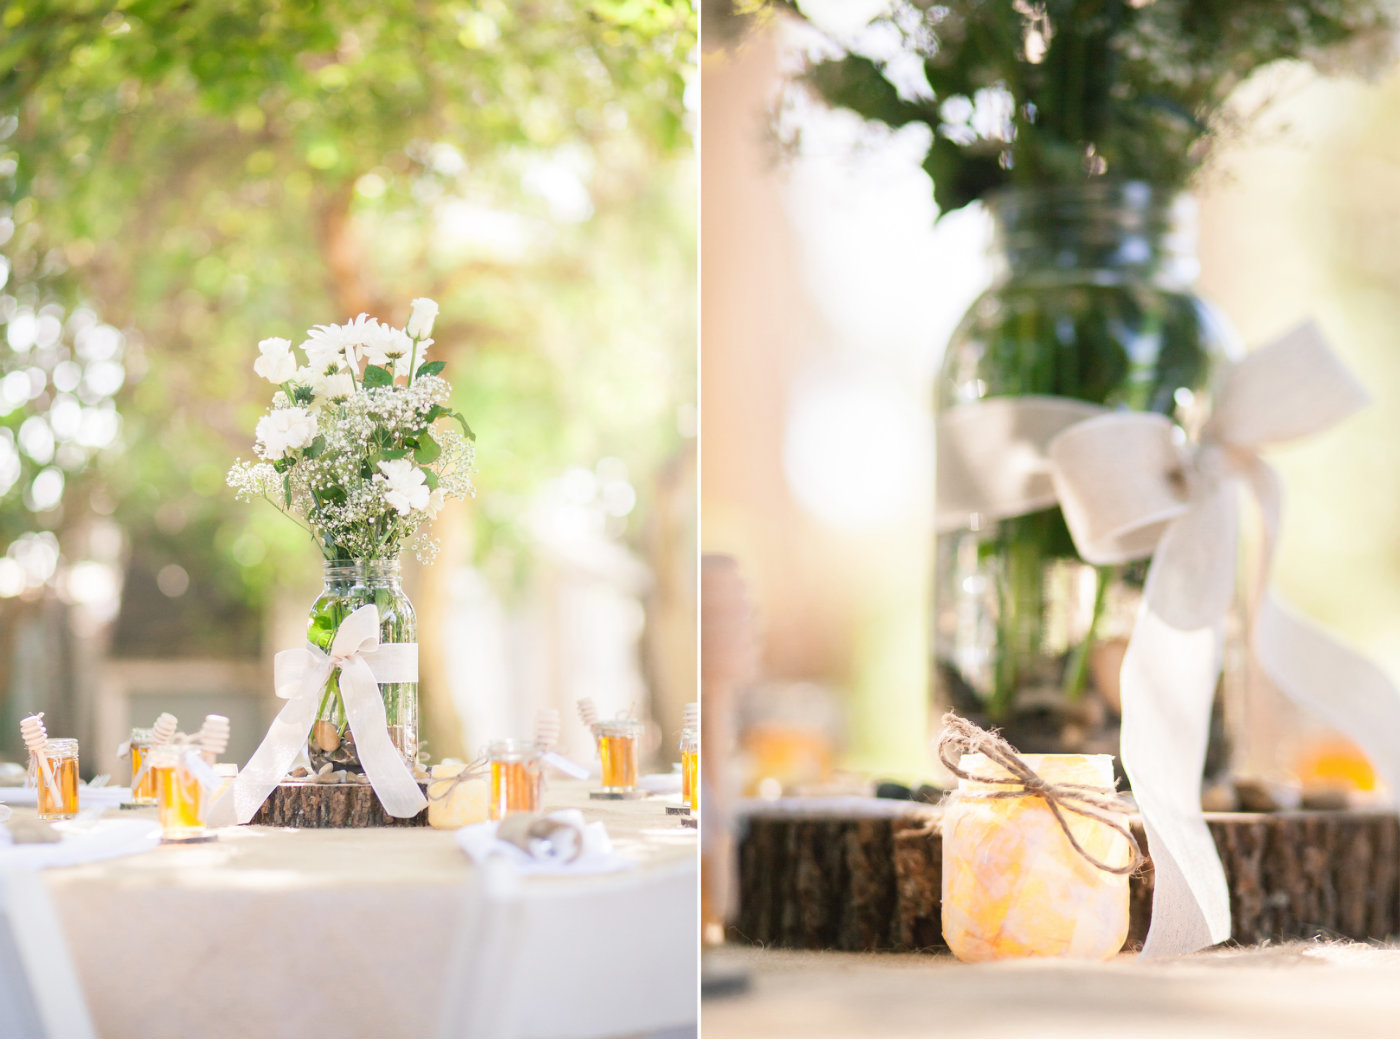 Nipomo CA Wedding Details, Flowers, Tables